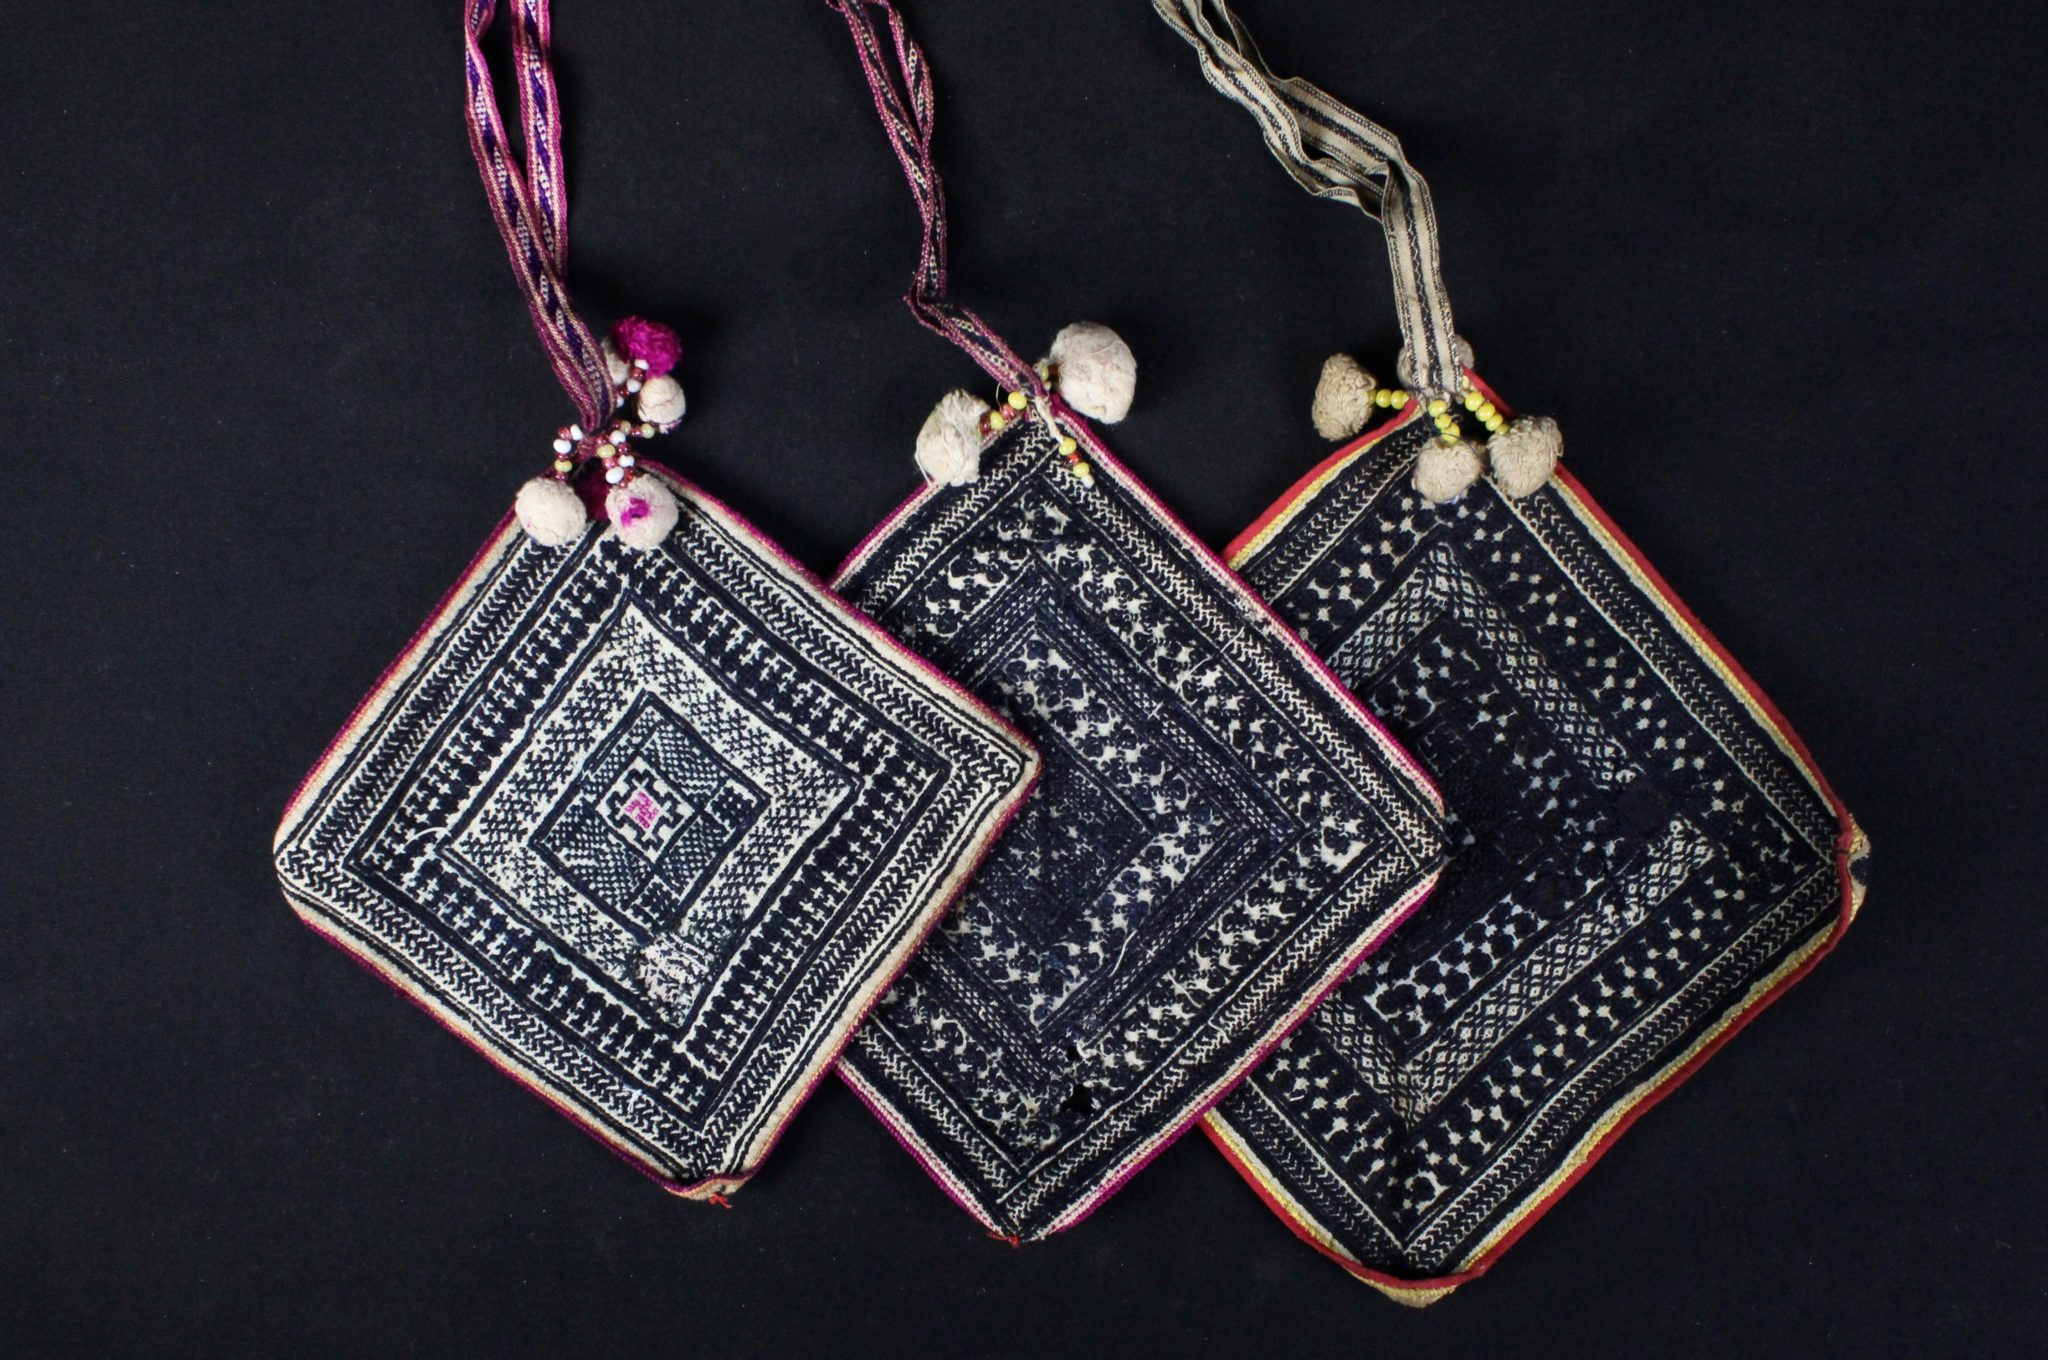 Handkerchief/Panel from a Shamanic Belt, Da Bac district, Hoa Binh province, Vietnam, Tight Trouser Dao people Early to mid 20th c, Cotton, hand embroidered with silk, Worn by shaman while performing religious rituals. A complete belt would have a minimum of 12 squares (handkerchiefs). The belt is passed down through generations, revealing its history. If a shaman has two sons or apprentices, he will spit the belt and the new shaman's wife will make the other necessary handkerchiefs. $75. to $90.